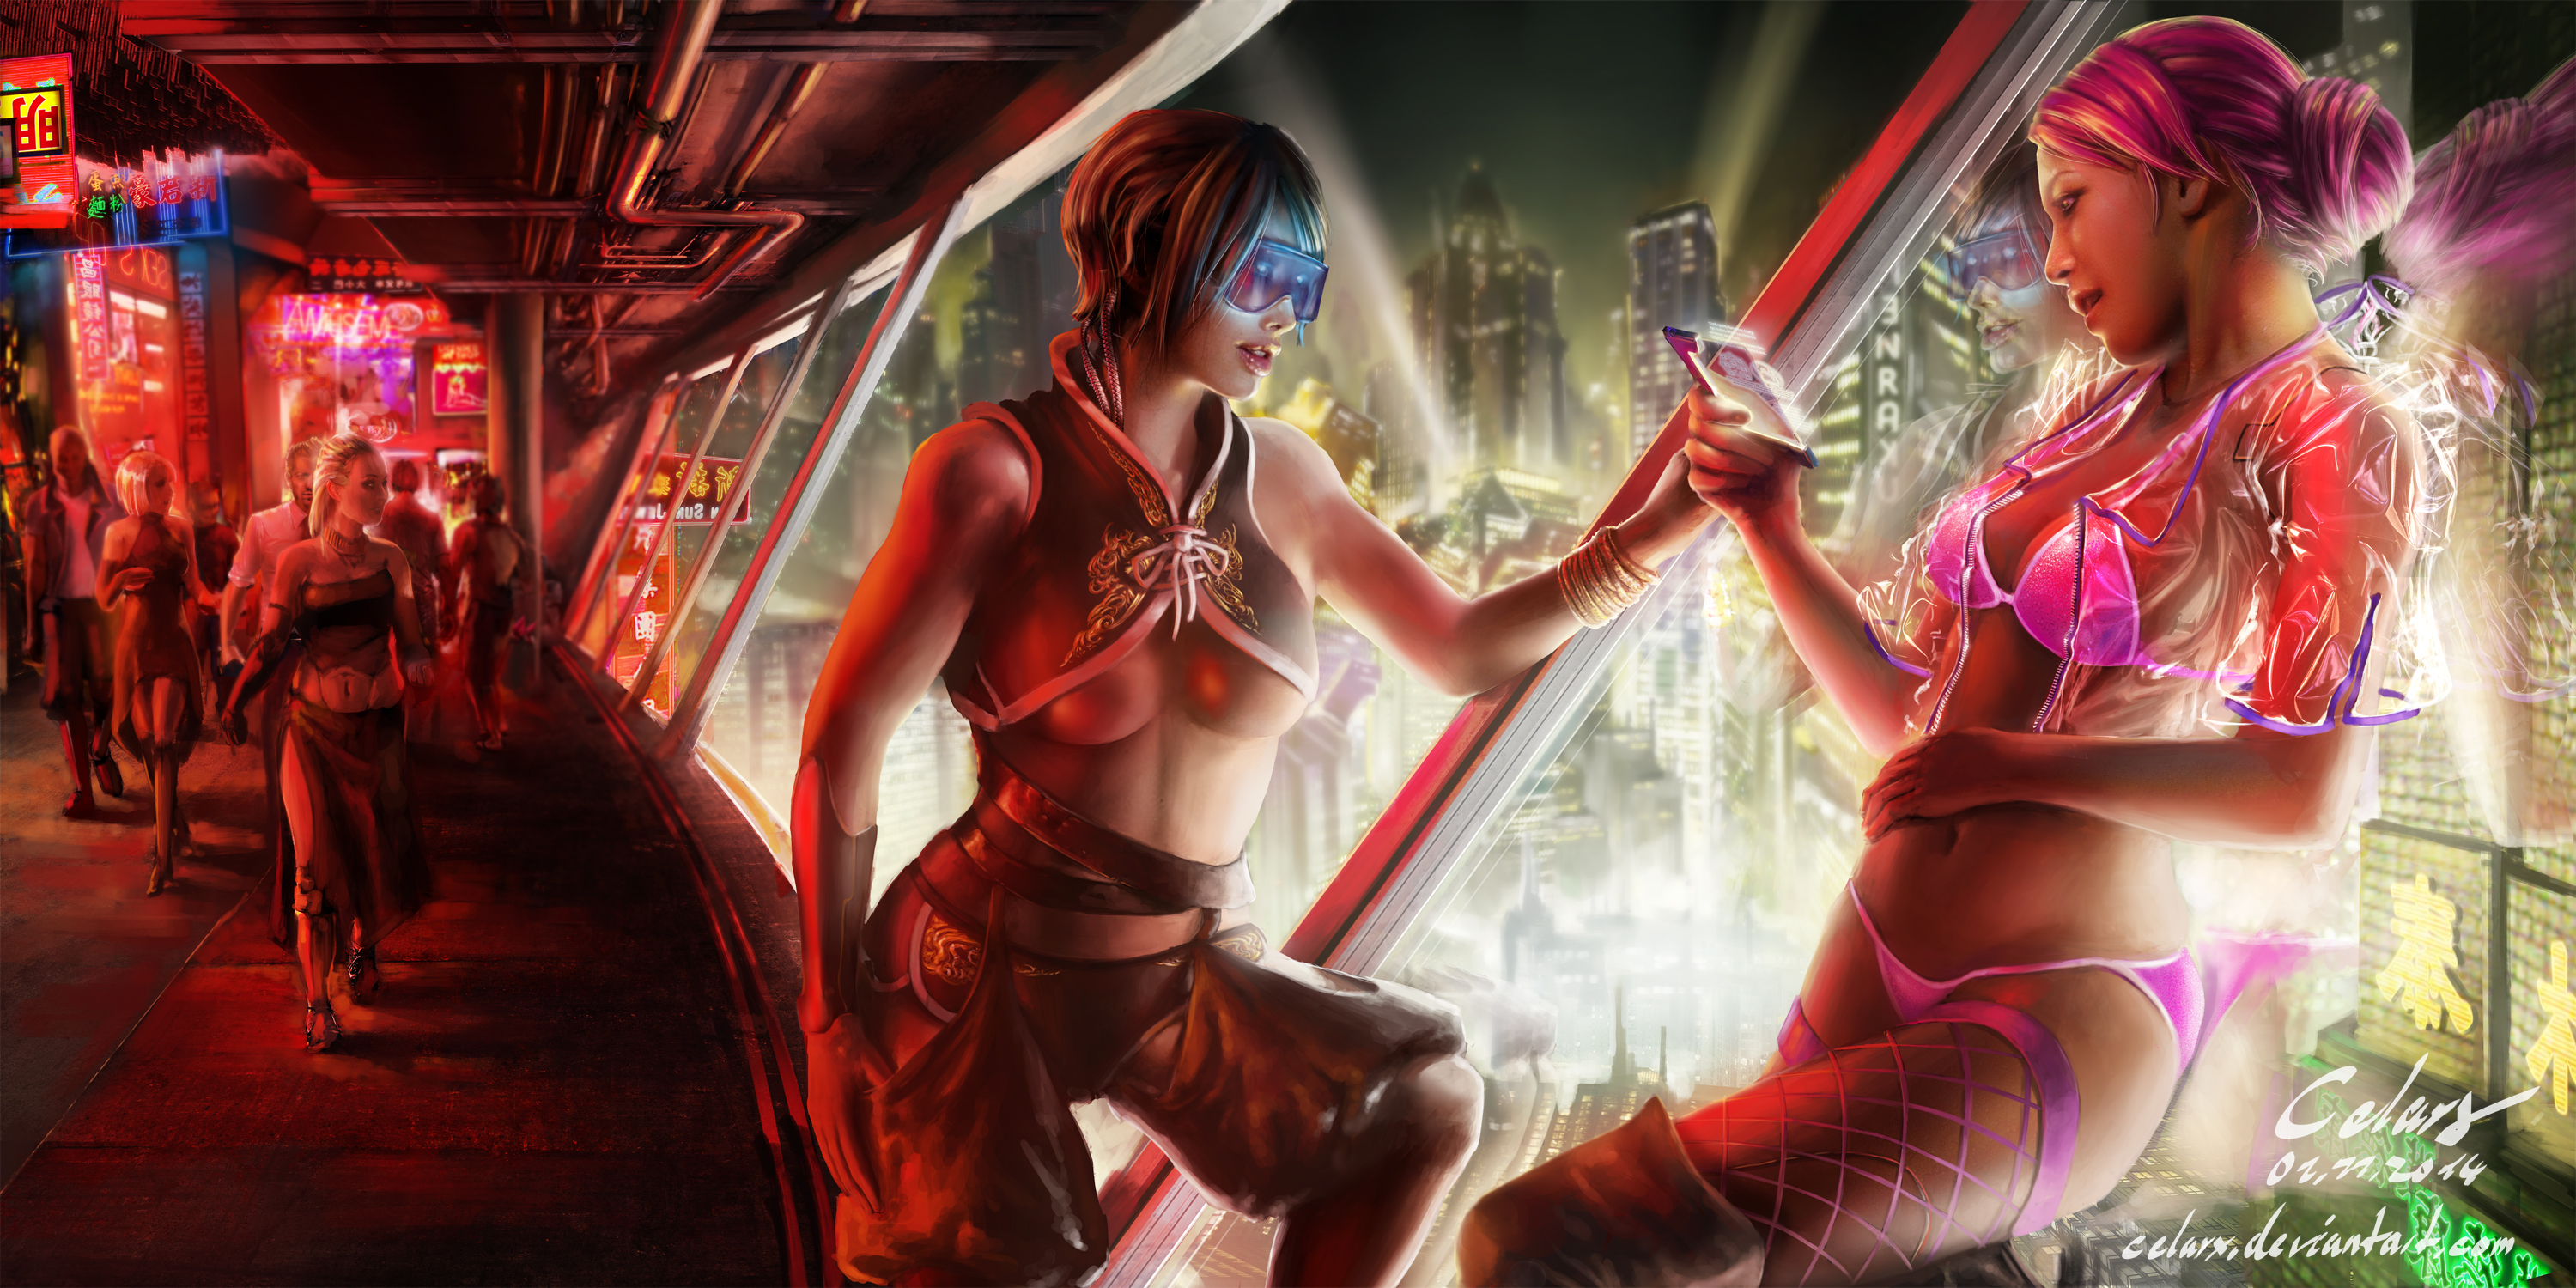 Cyberpunk - Redlight District by Celarx